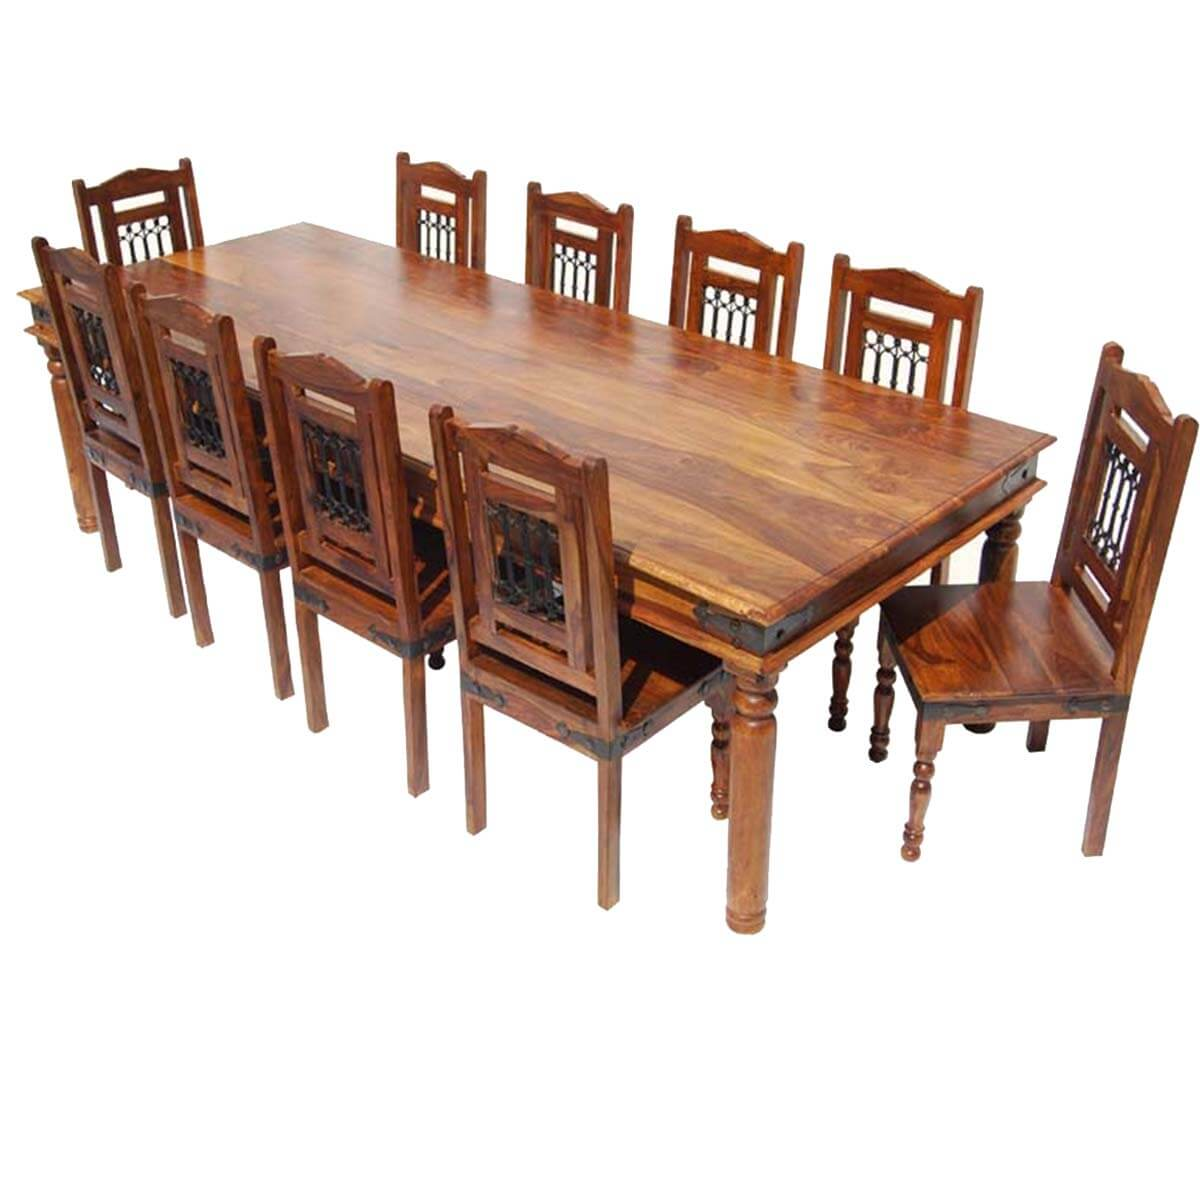 Solid wood large rustic dining room table chair sideboard set for Dining room tables large